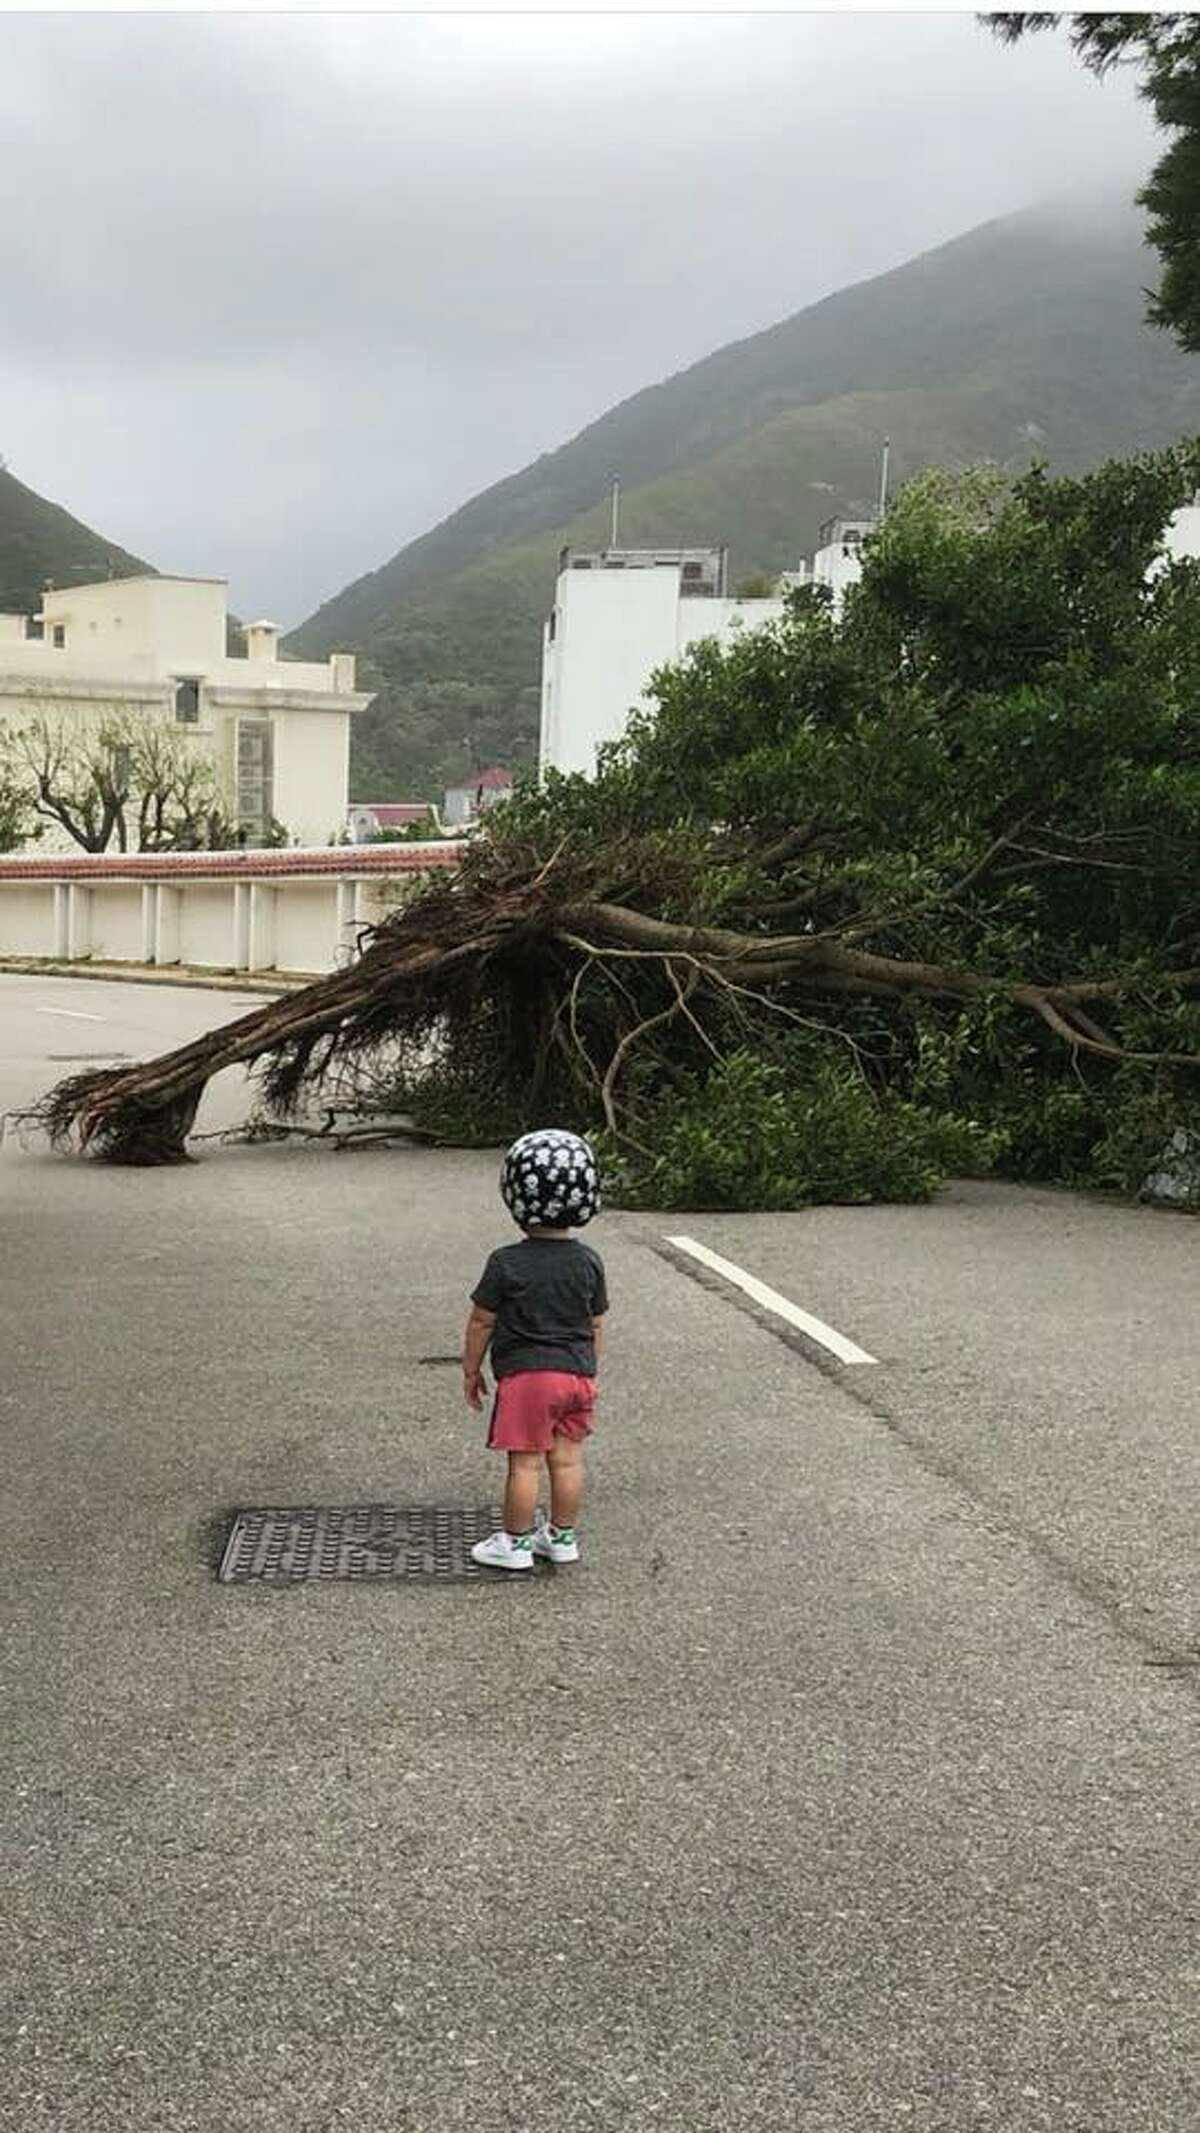 Knapp's 2 year-old-grandson Nash surveying some of the damage after Typhoon Mangkhut slammed into Hong Kong last month.